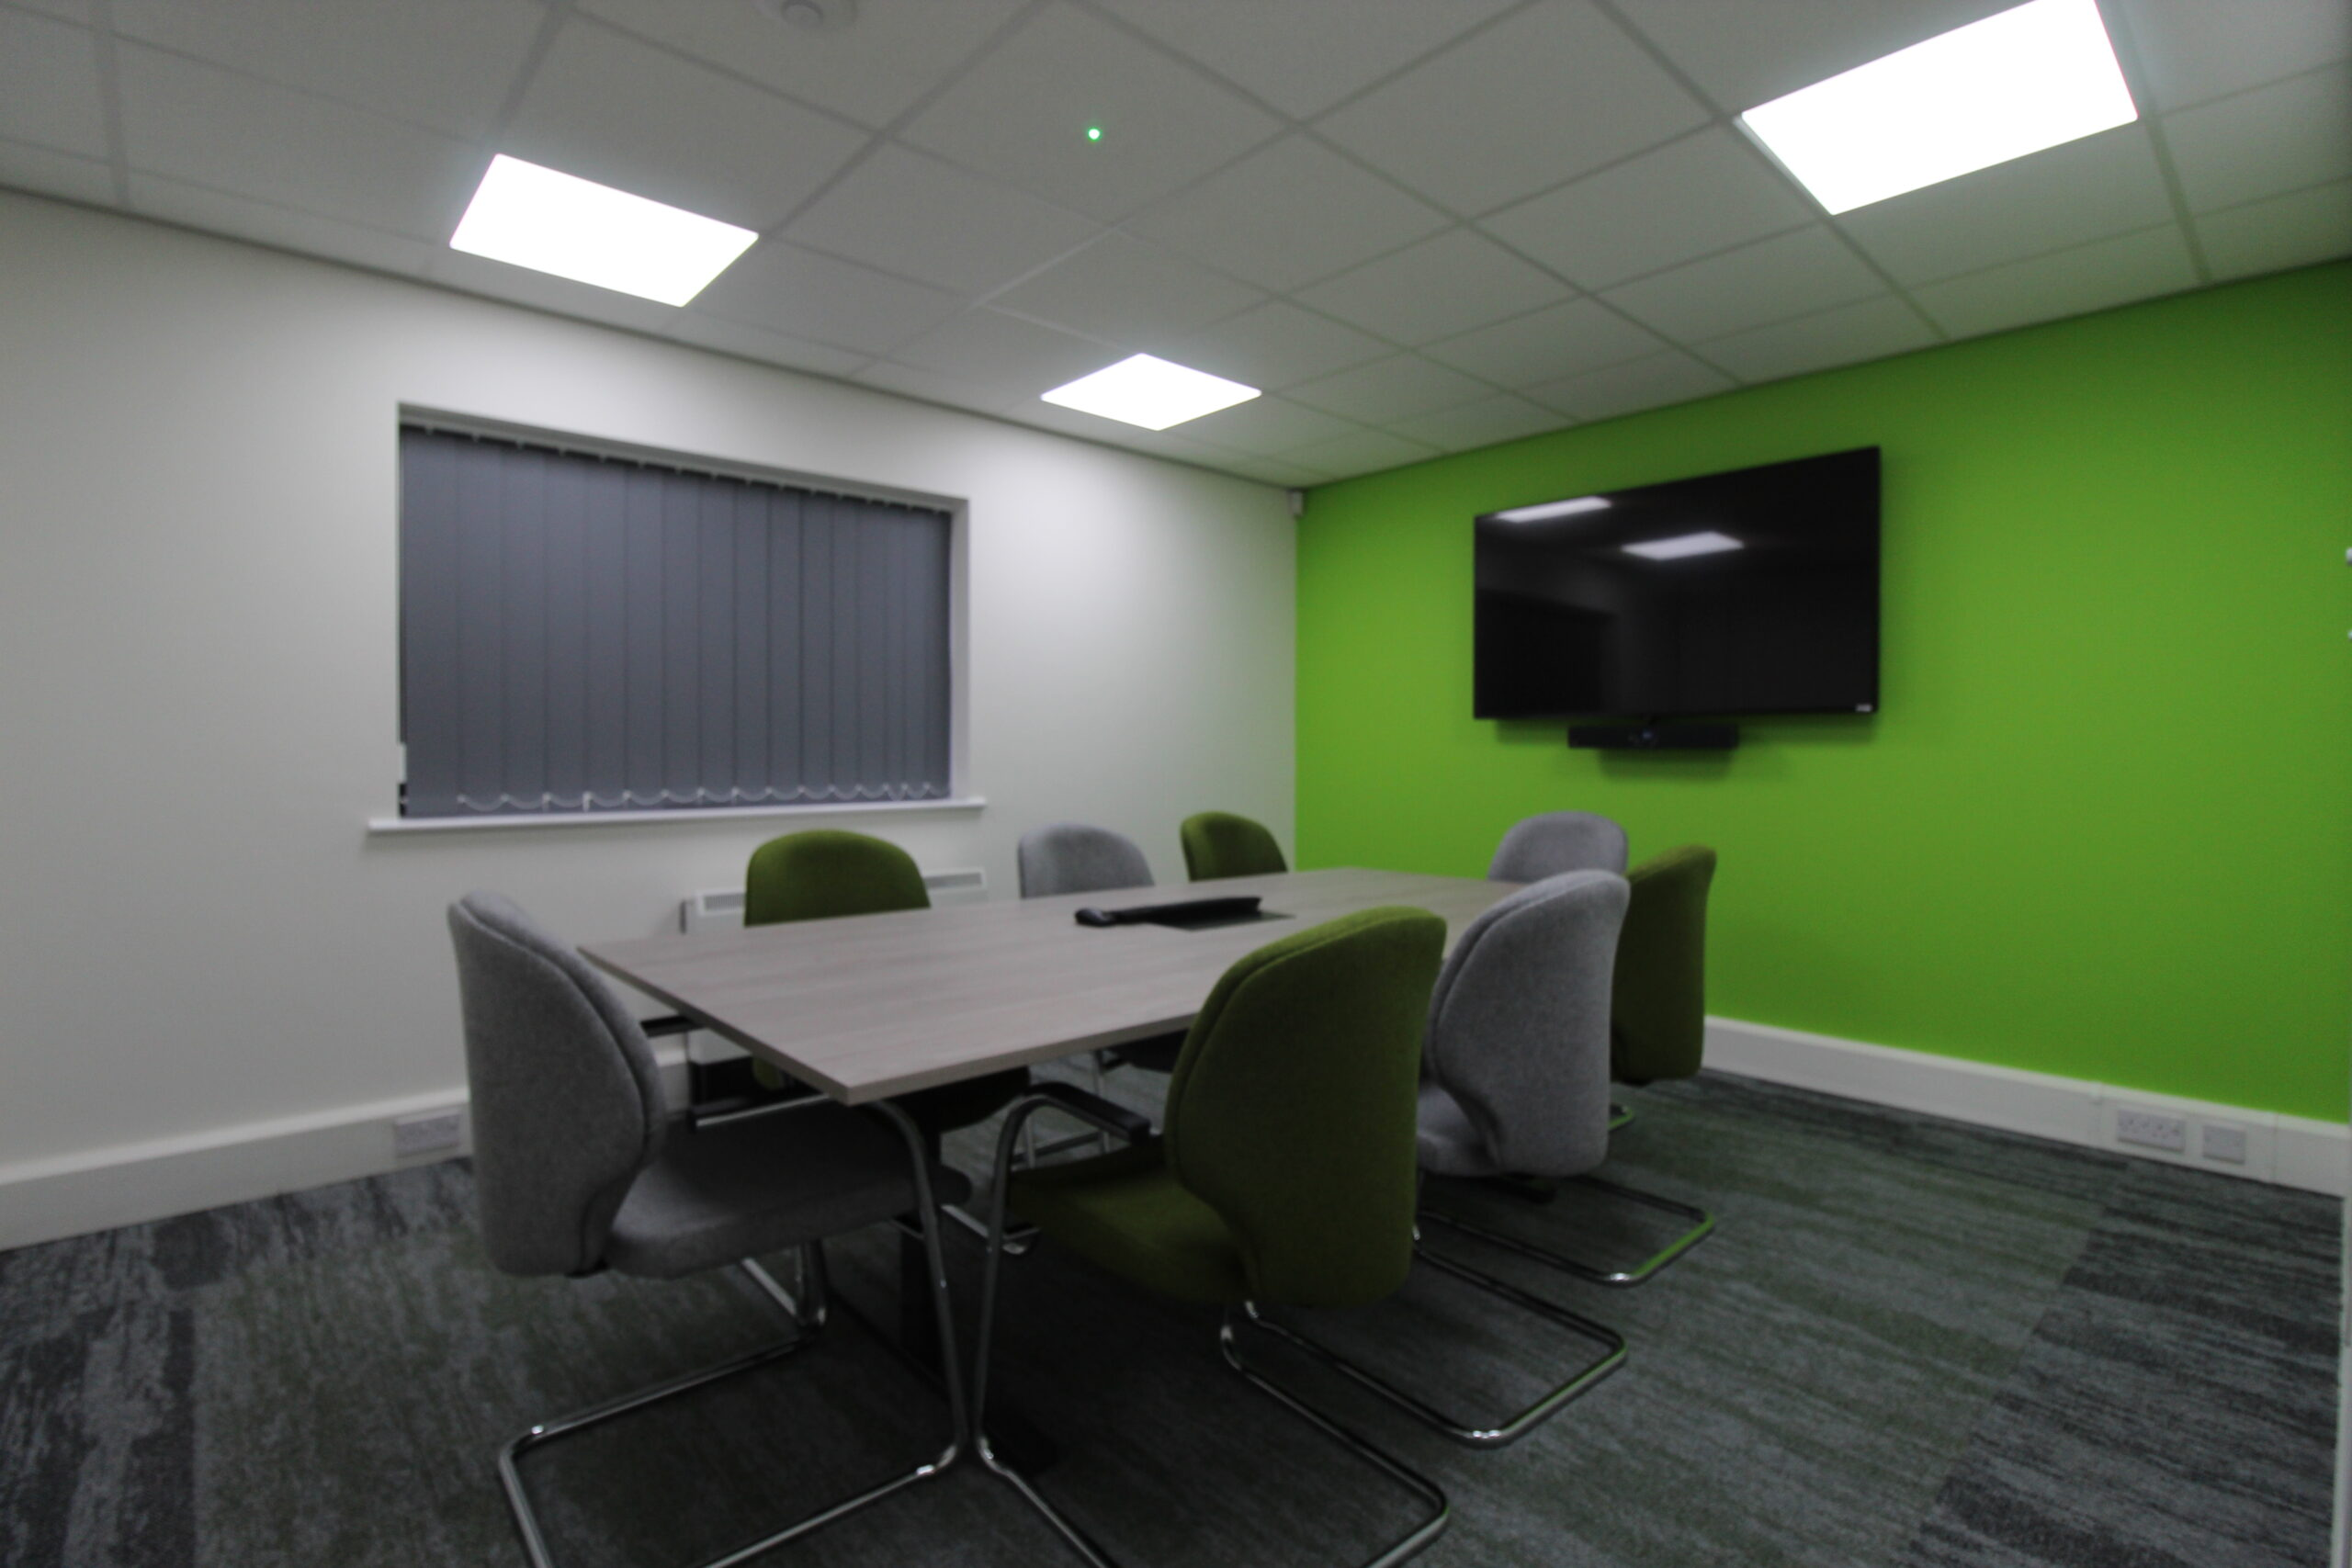 green wall with TV and boardroom table